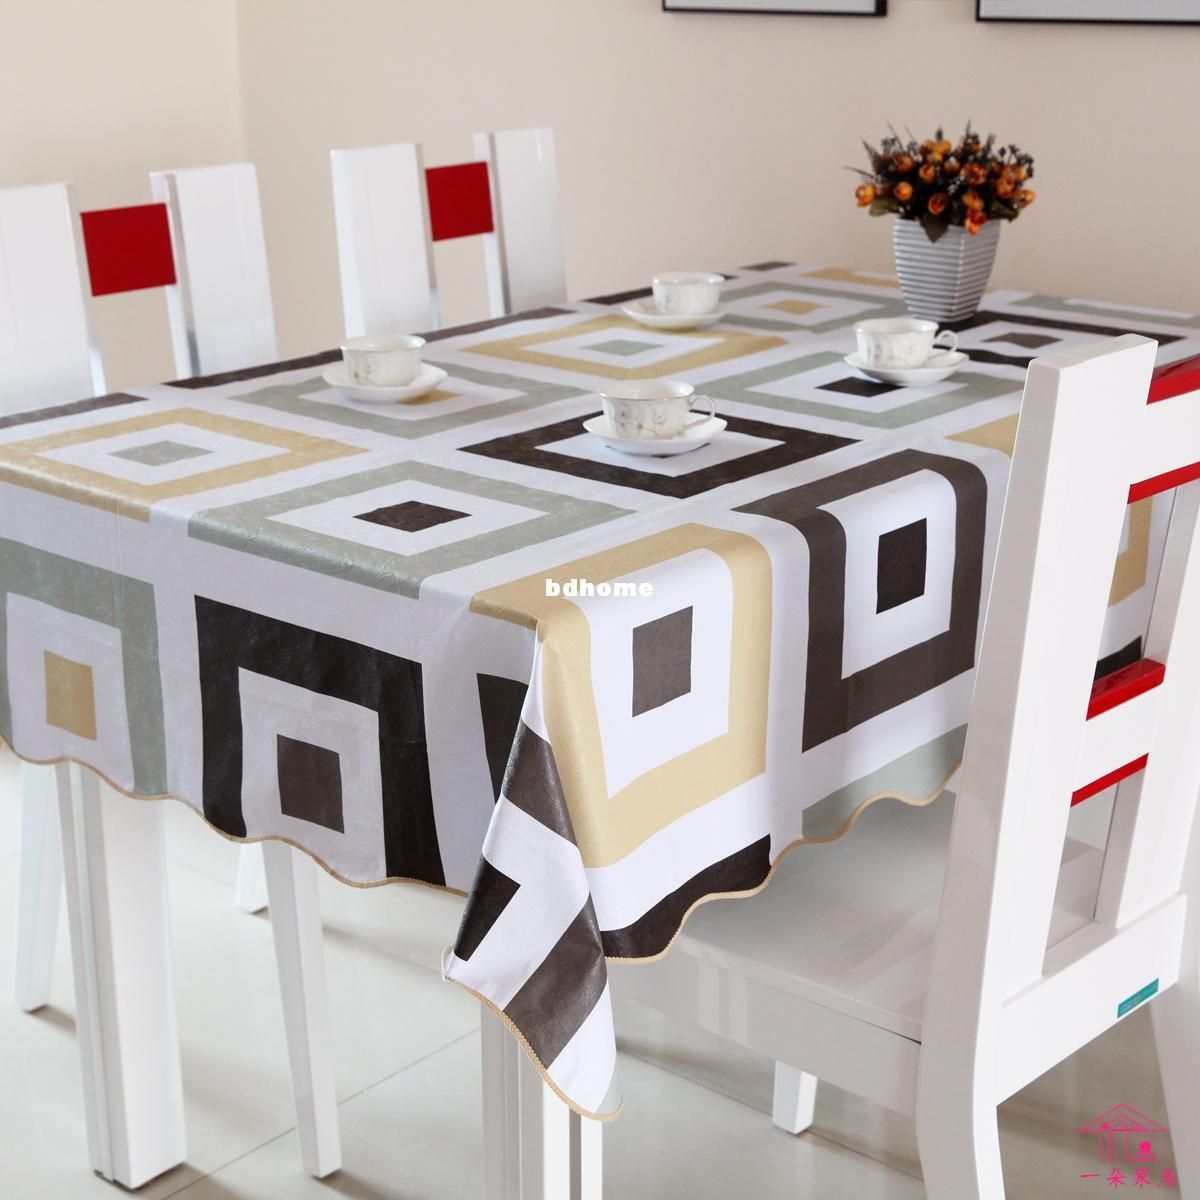 27 Cozy Dining Room Tablecloth - 2719  Dining table cloth, Dining